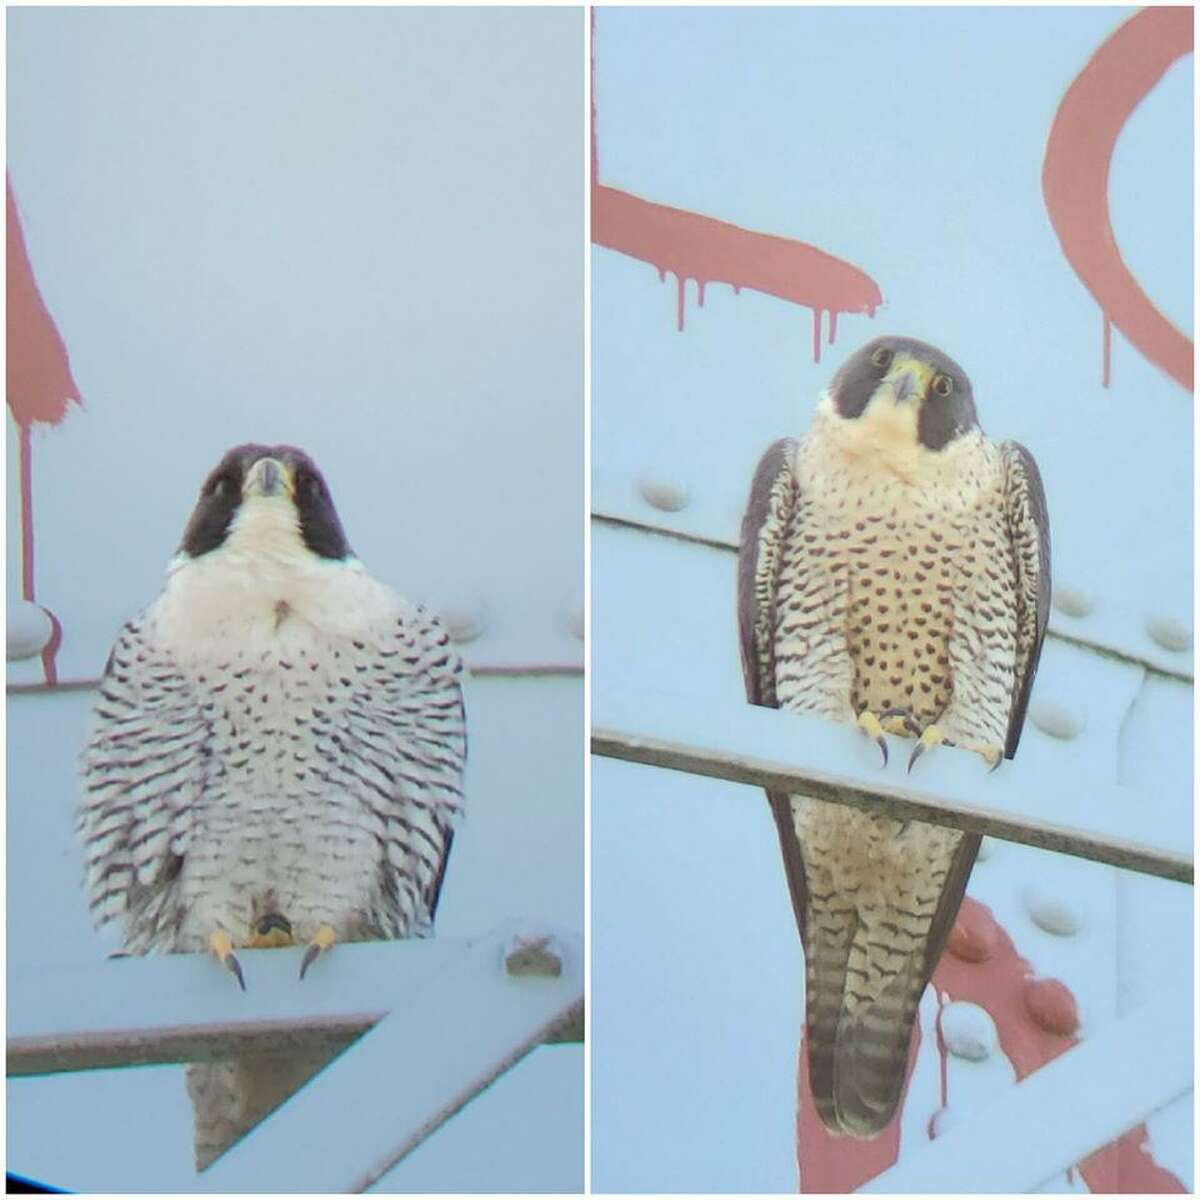 The cute couple, doting parents of newborns, have built the first falcon nest in Alcatraz Island's history.